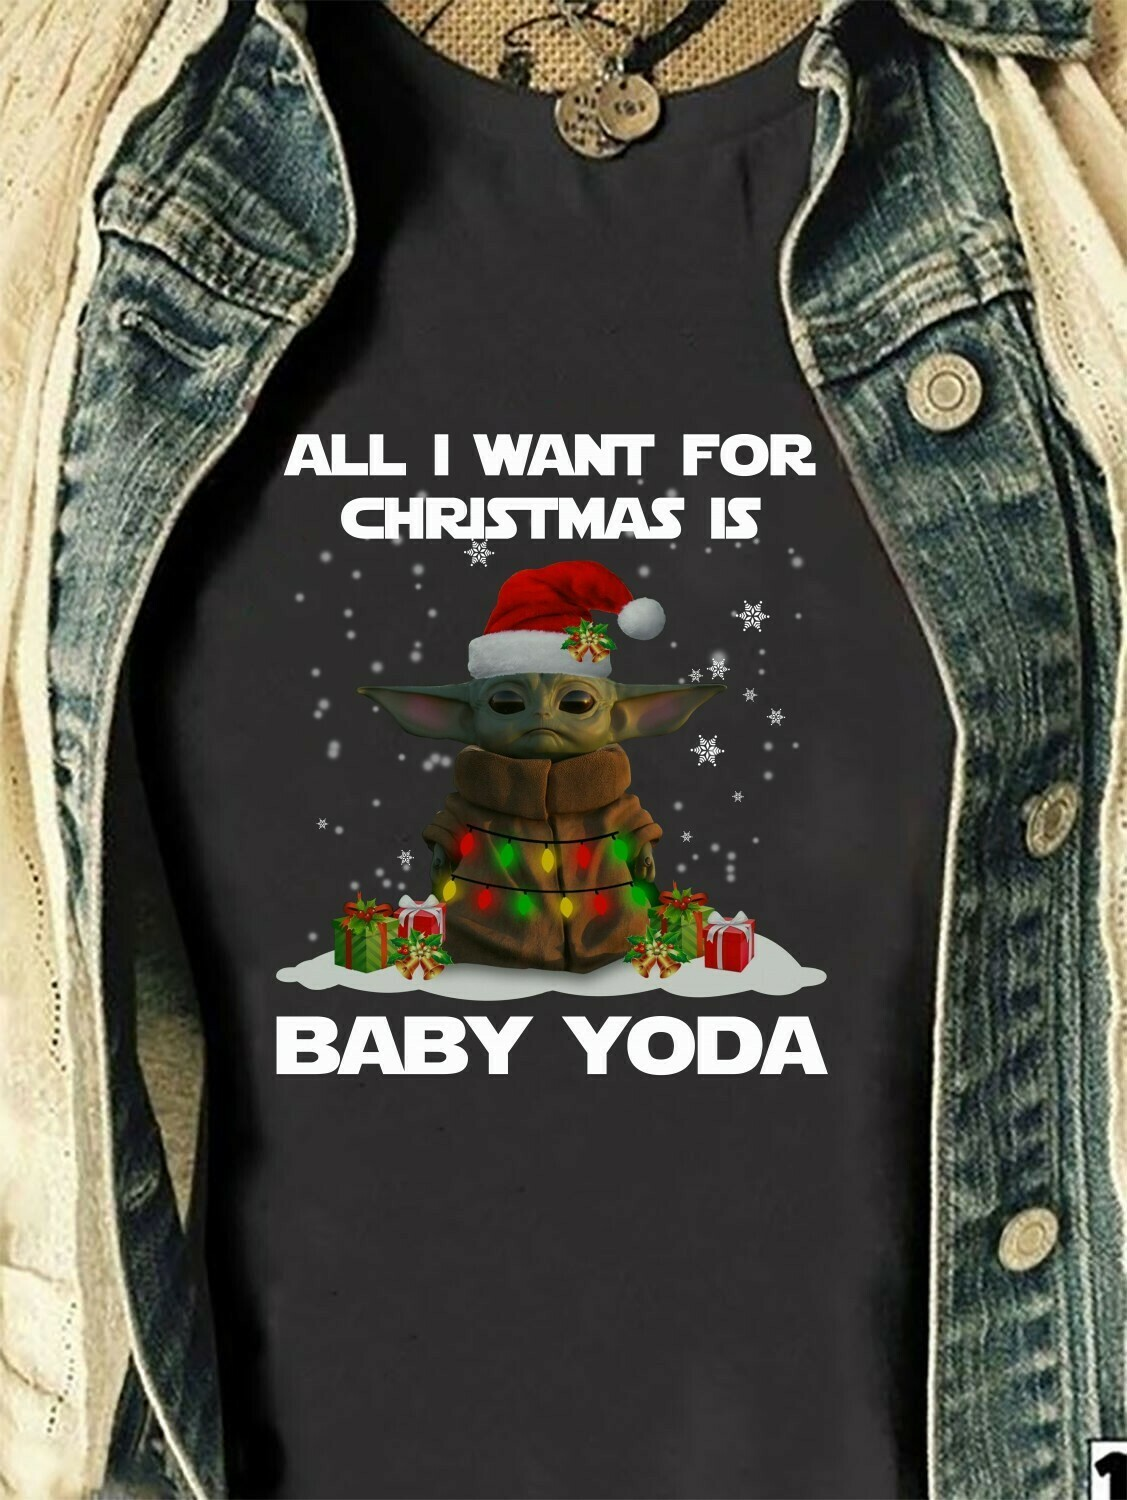 All I Want For Christmas Is A Baby Yoda,Star Wars The Mandalorian The Child When Your Song Comes On,Baby Humanoid Tee T- Shirt Long Sleeve Sweatshirt Hoodie Jolly Family Gifts